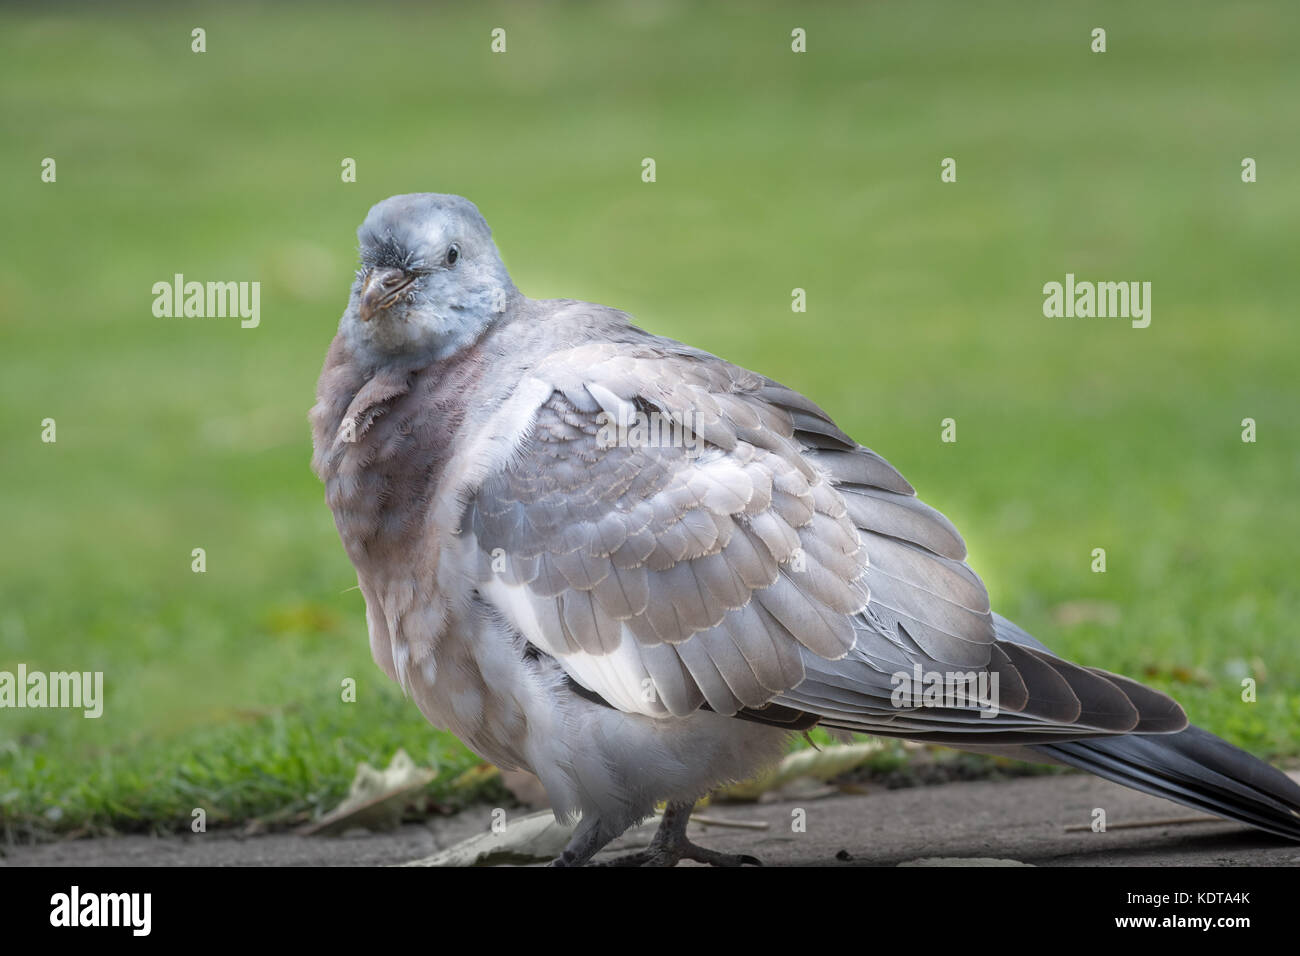 Alert and wary old- aged wood pigeon - Stock Image